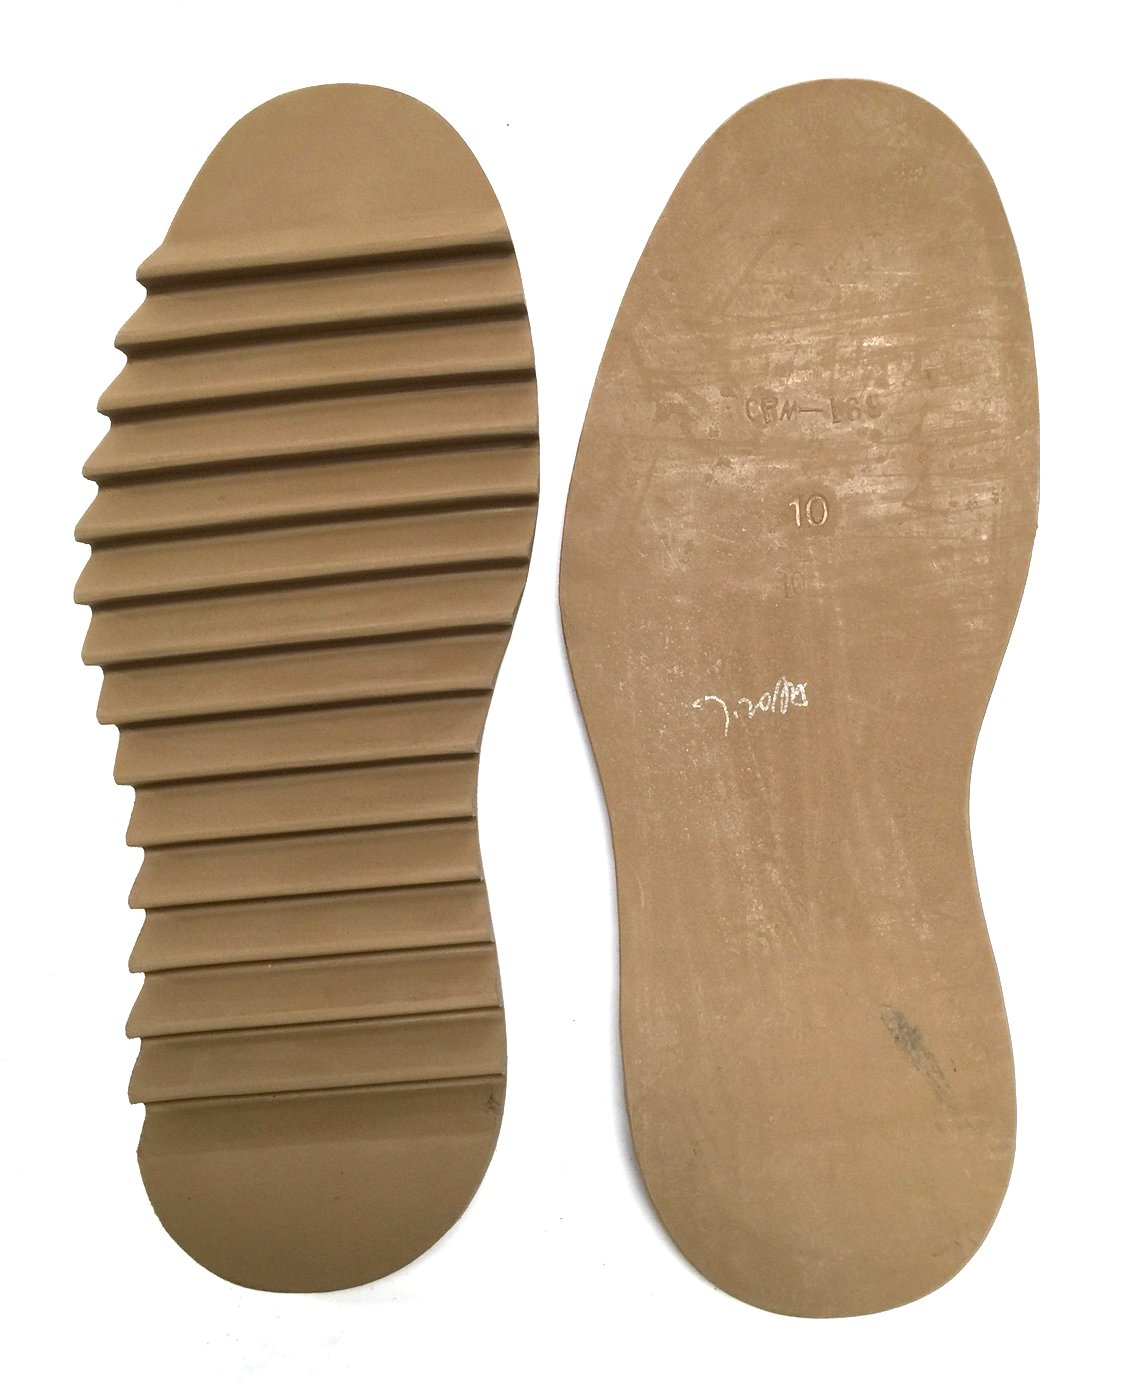 91983c29ca813 SoleTech Ripple Full Sole Oak Color 1 PAIR Shoe Repair (8)